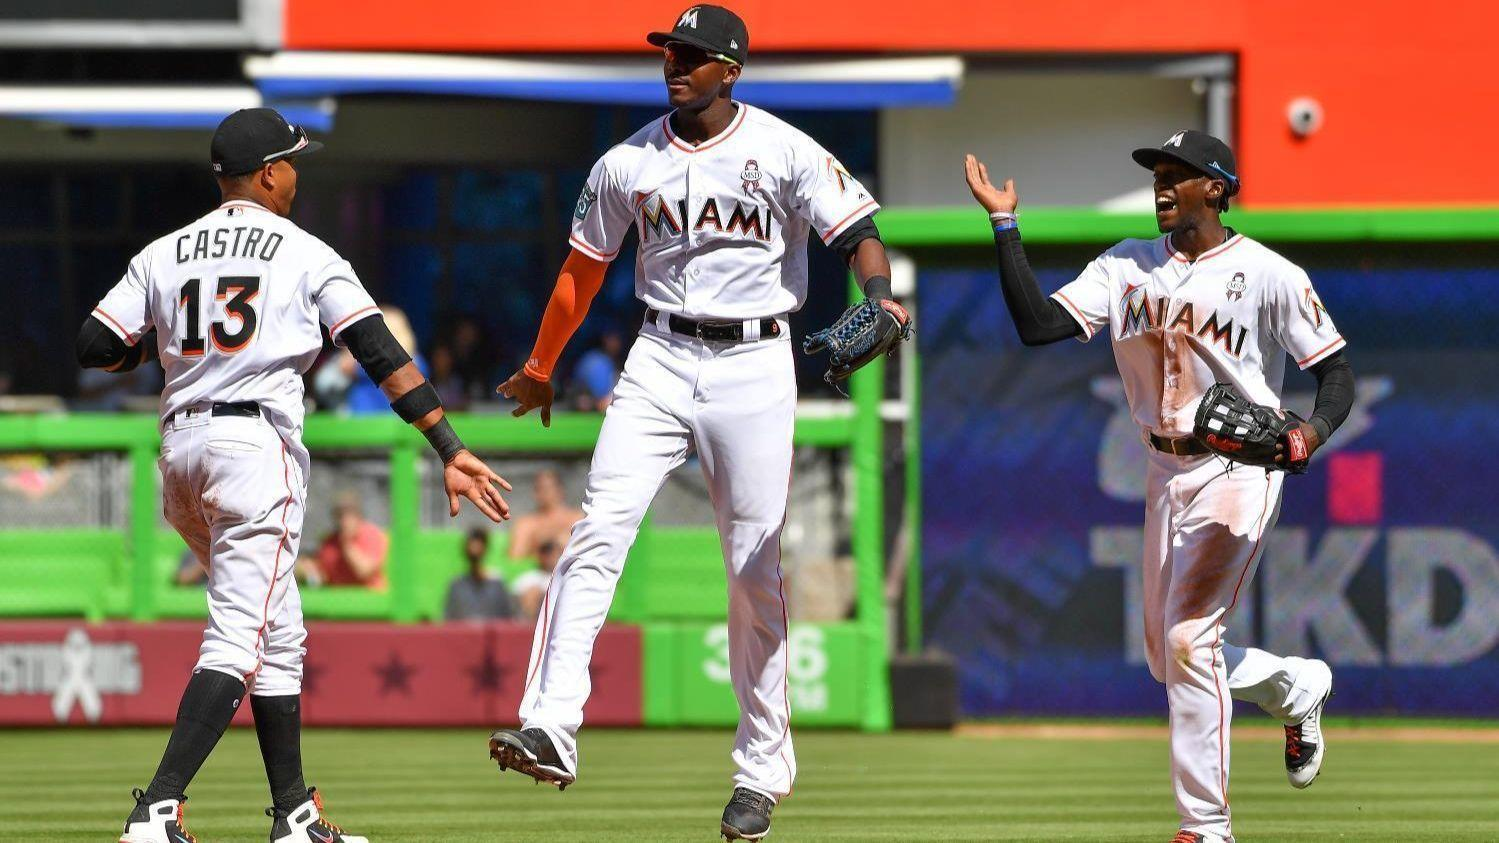 Fl-sp-miami-marlins-homestand-review-wed-20180404